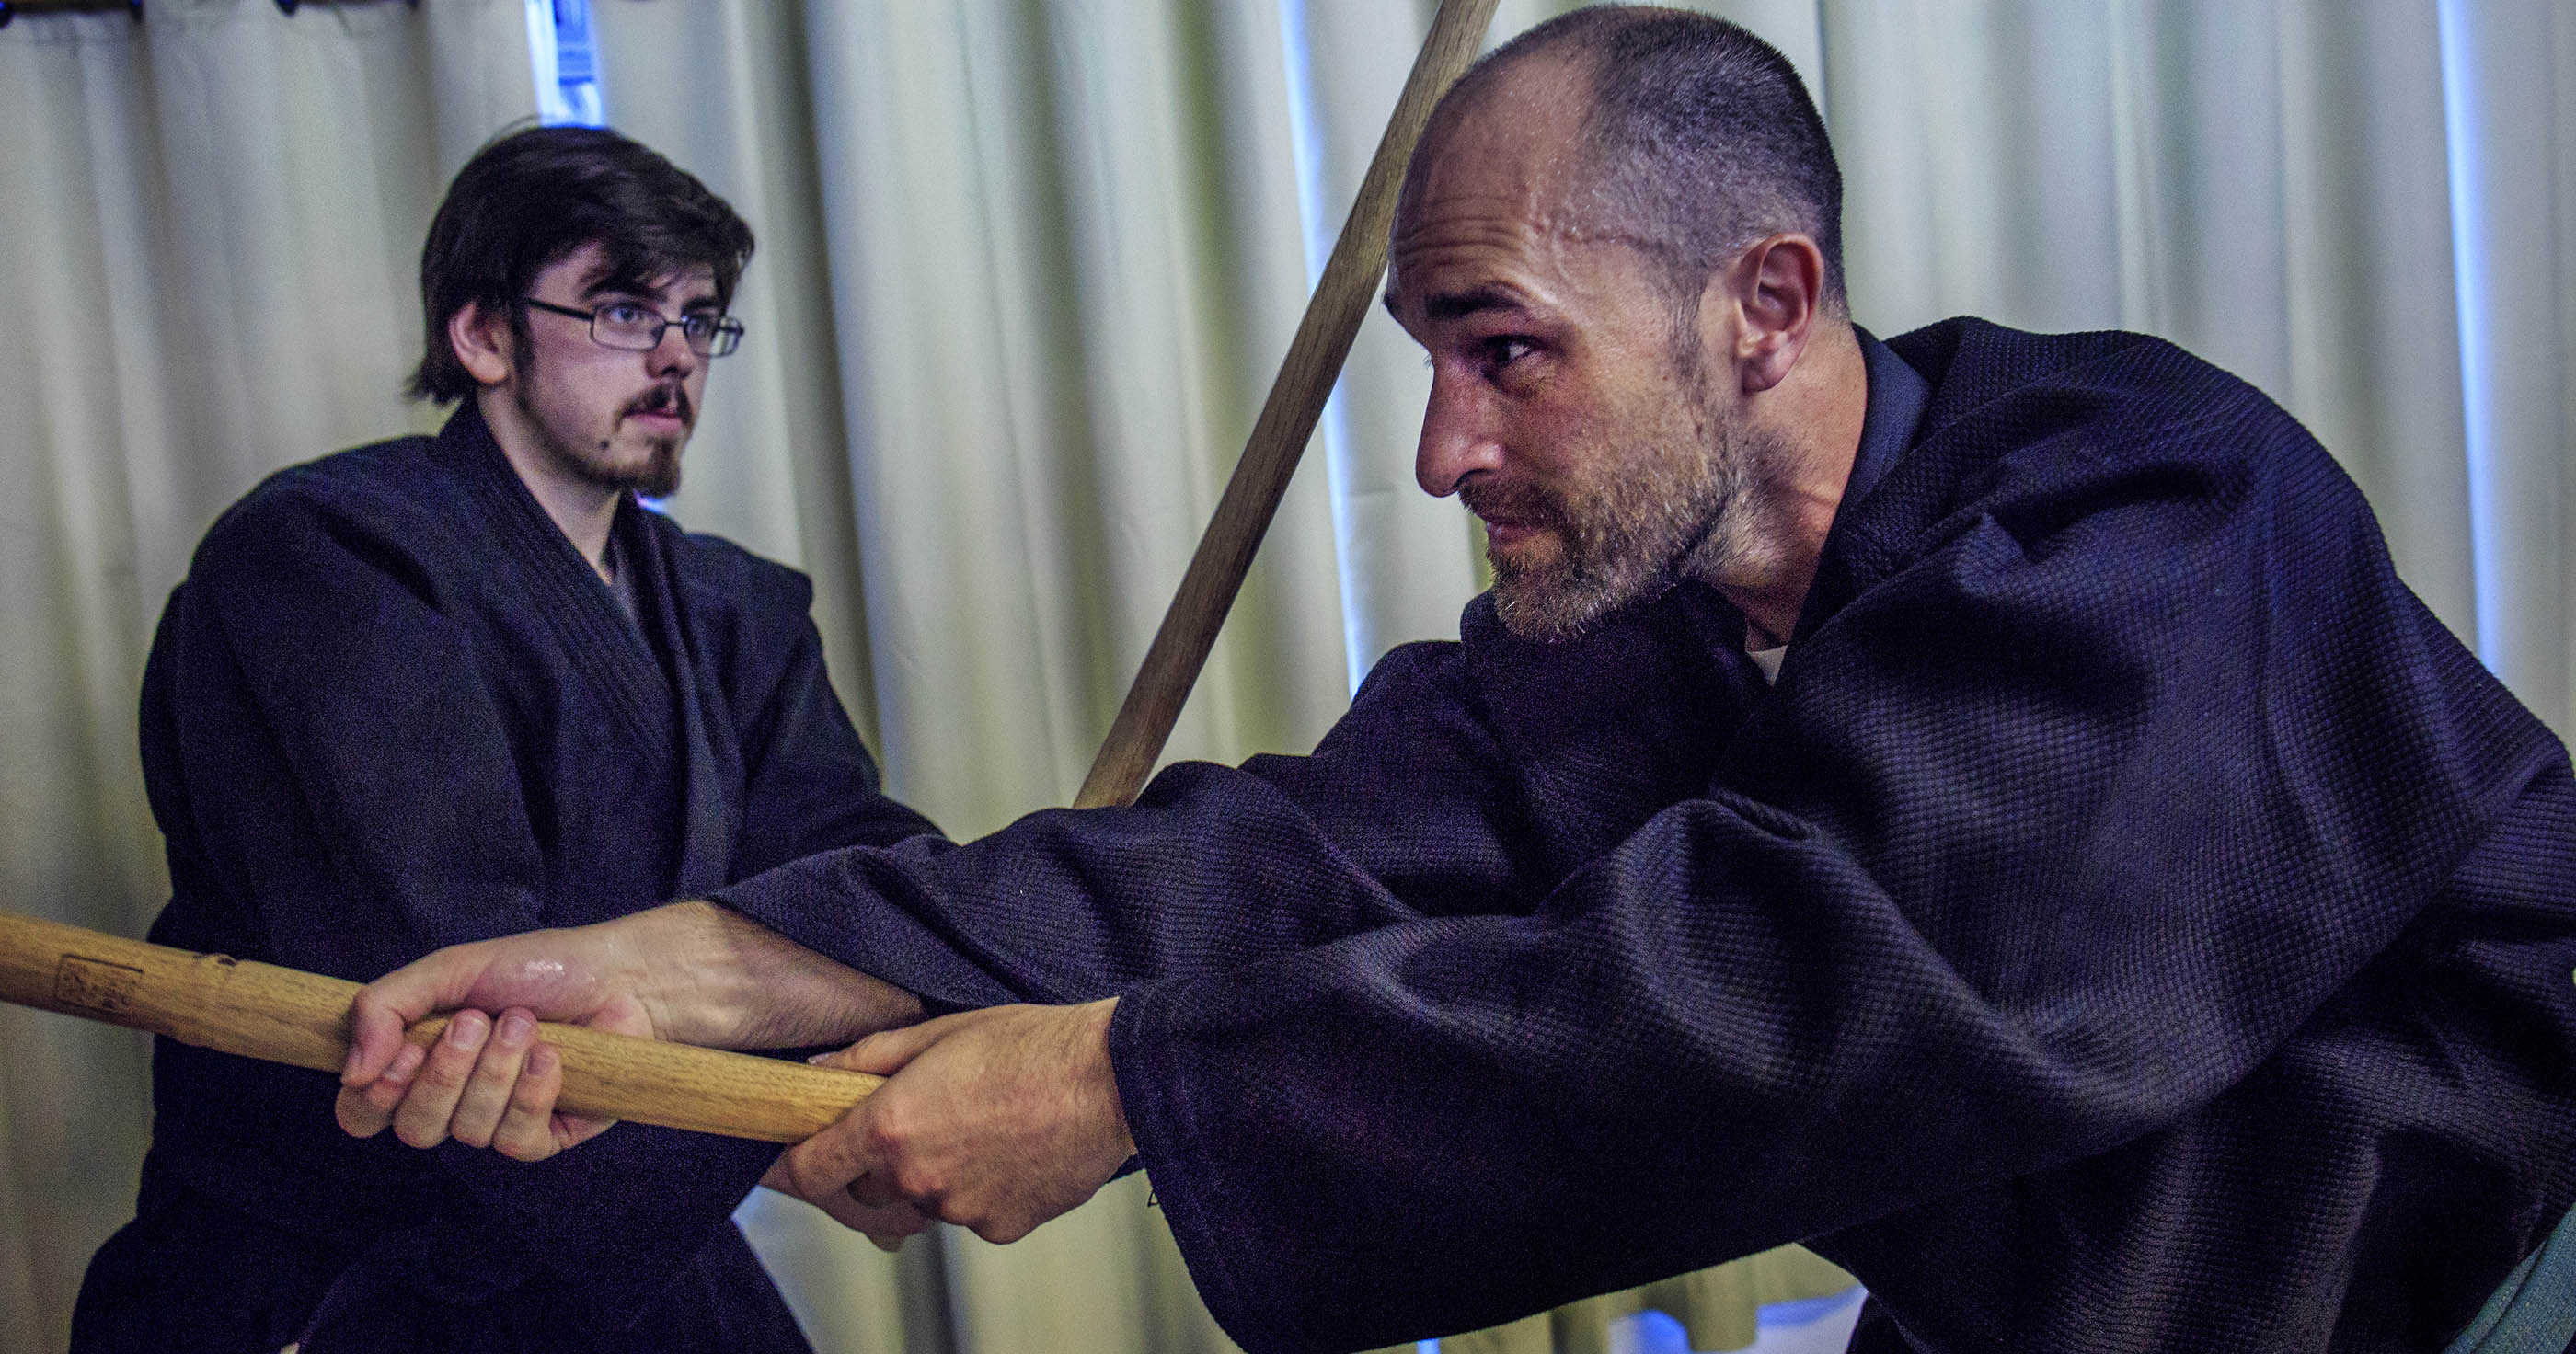 NINJA REAL MONTREAL NINJUTSU FOREST DOJO FIGHT JAPAN Photoreport MICHAEL MONNIER